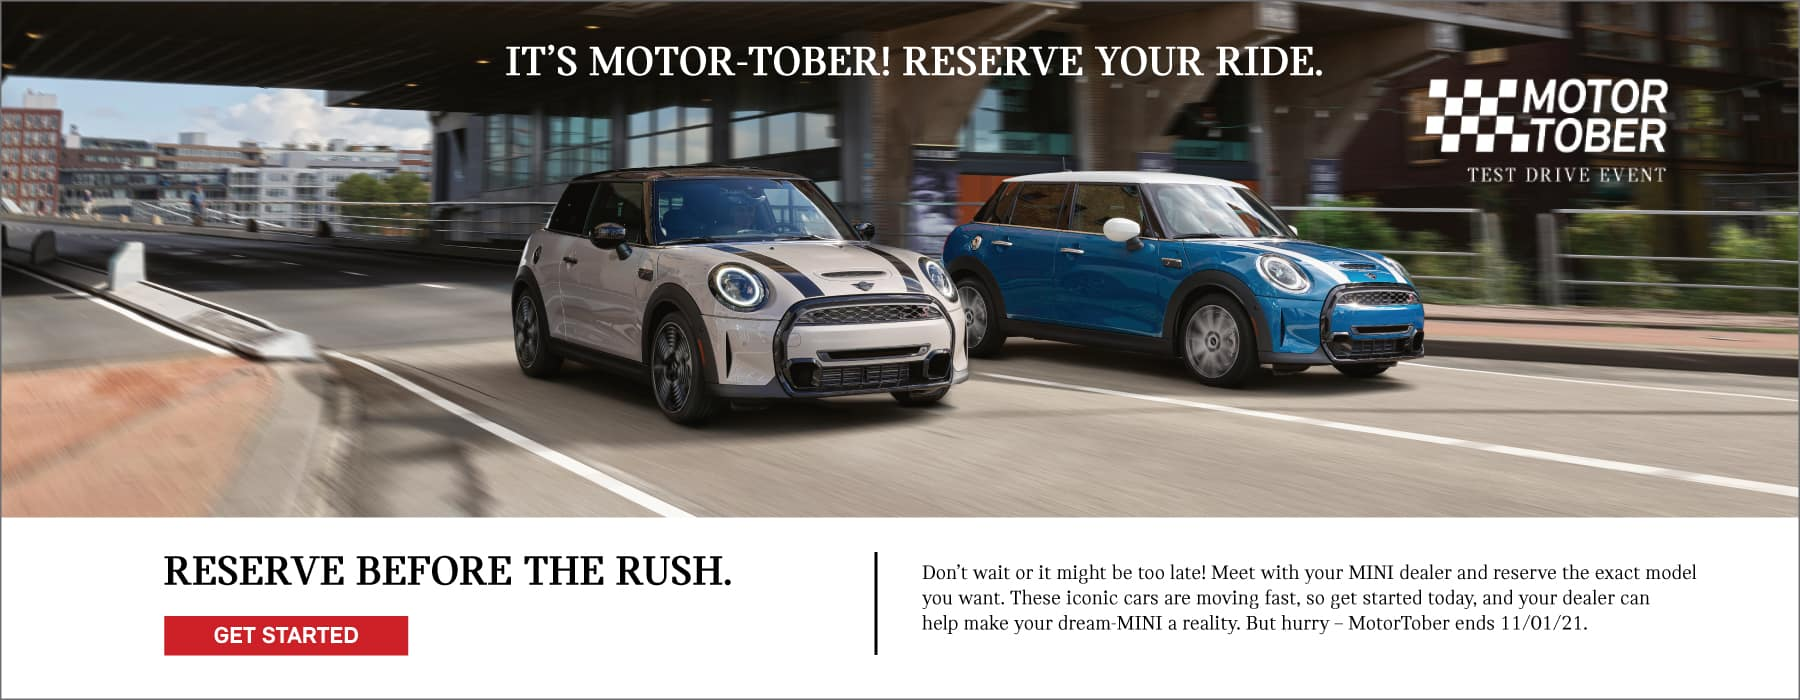 IT'S MOTOR-TOBER! RESERVE YOUR RIDE BEFORE THE RUSH. Don't wait or it might be too late! Meet with your MINI dealer and reserve the exact model you want. These iconic cars are moving fast, so get started today, and your dealer can help make your dream-MINI a reality. But hurry – MotorTober ends 11/01/2021.